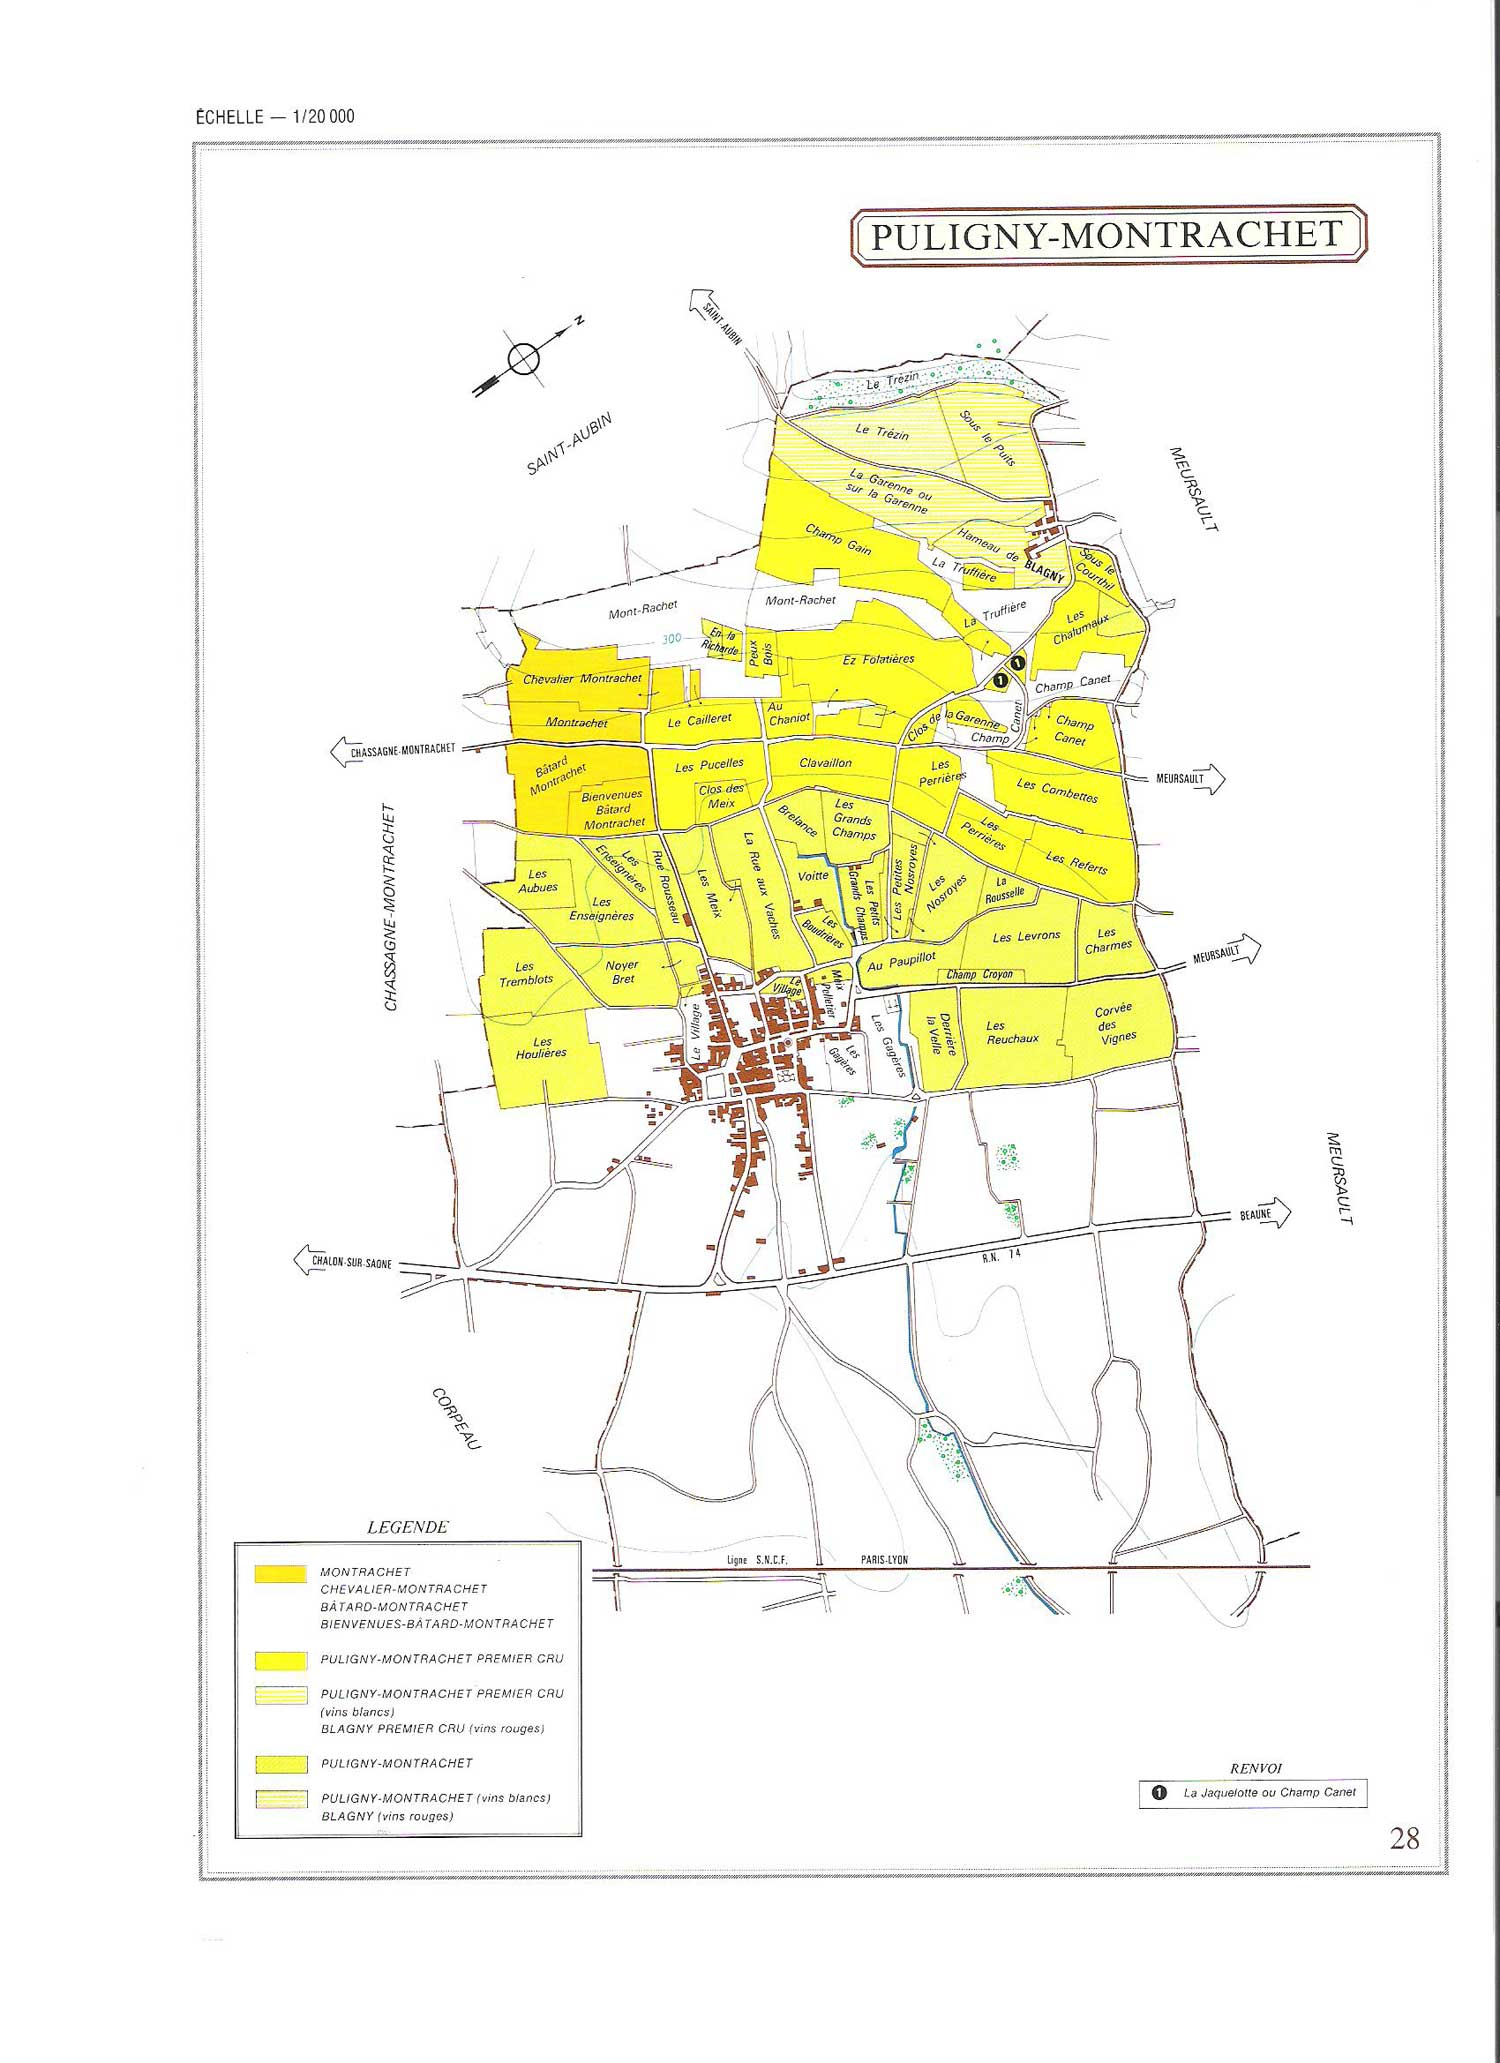 Picture of Puligny-Montrachet Vineyard Map